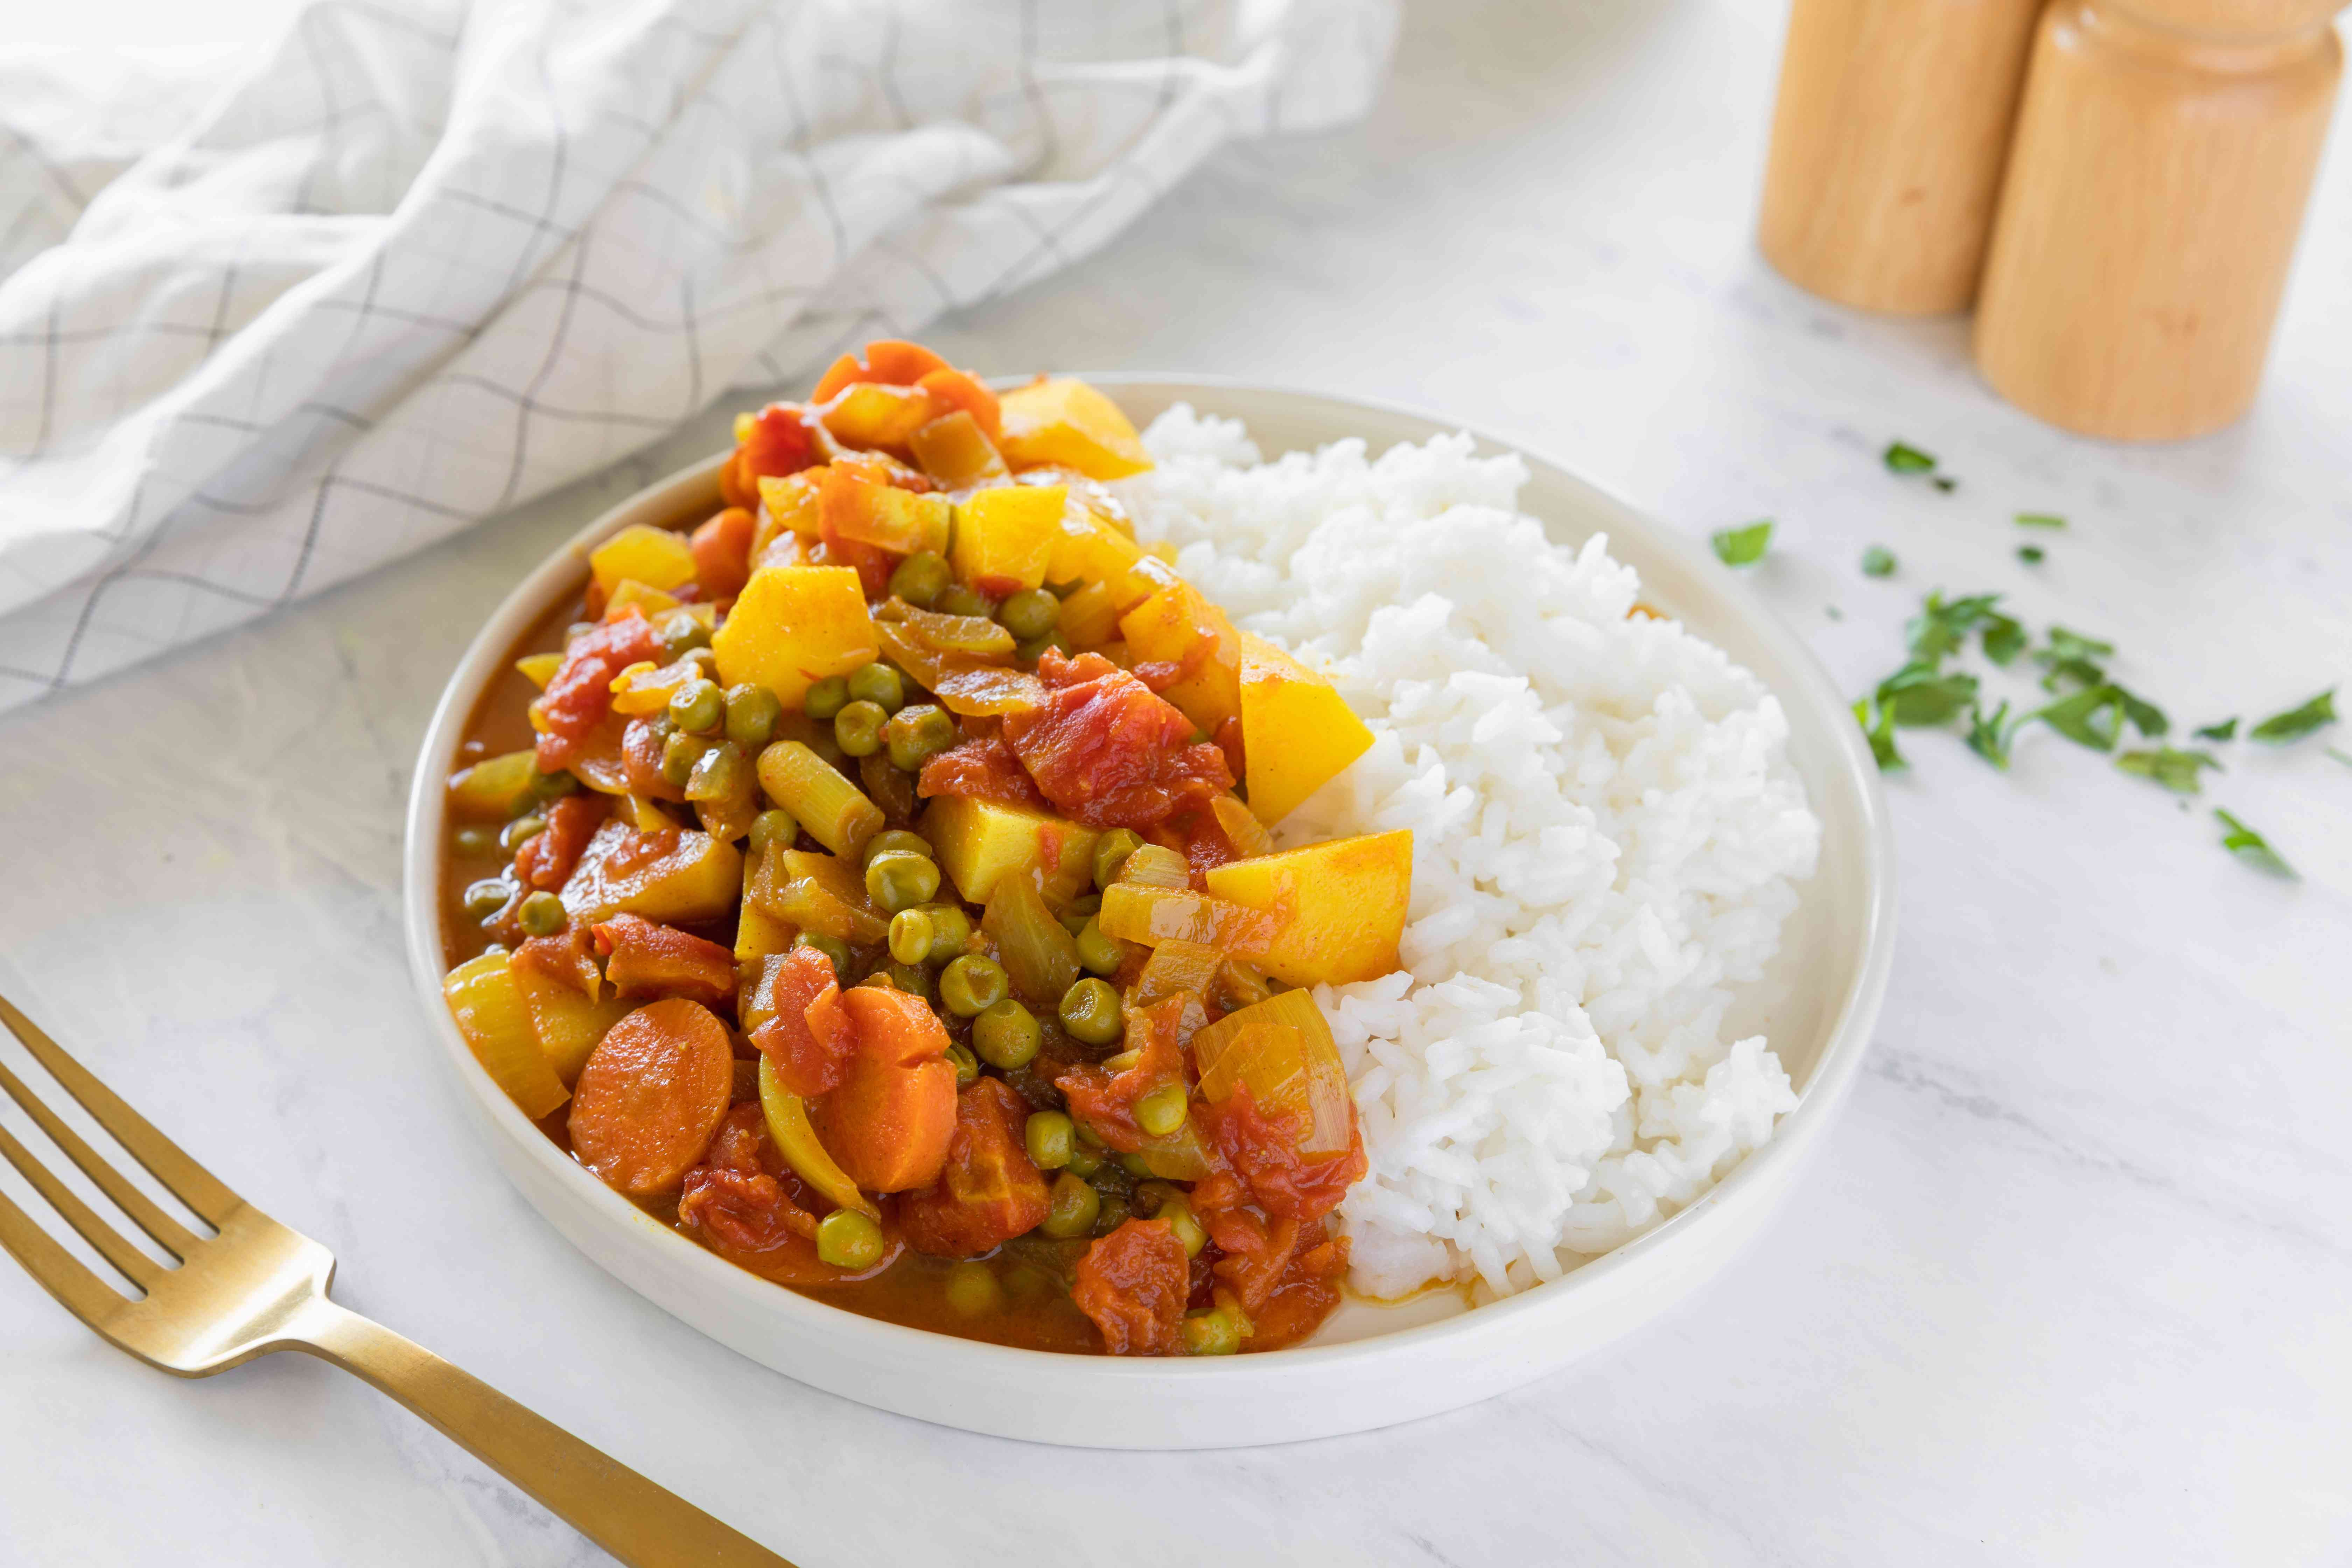 Curried Indian vegetables recipe